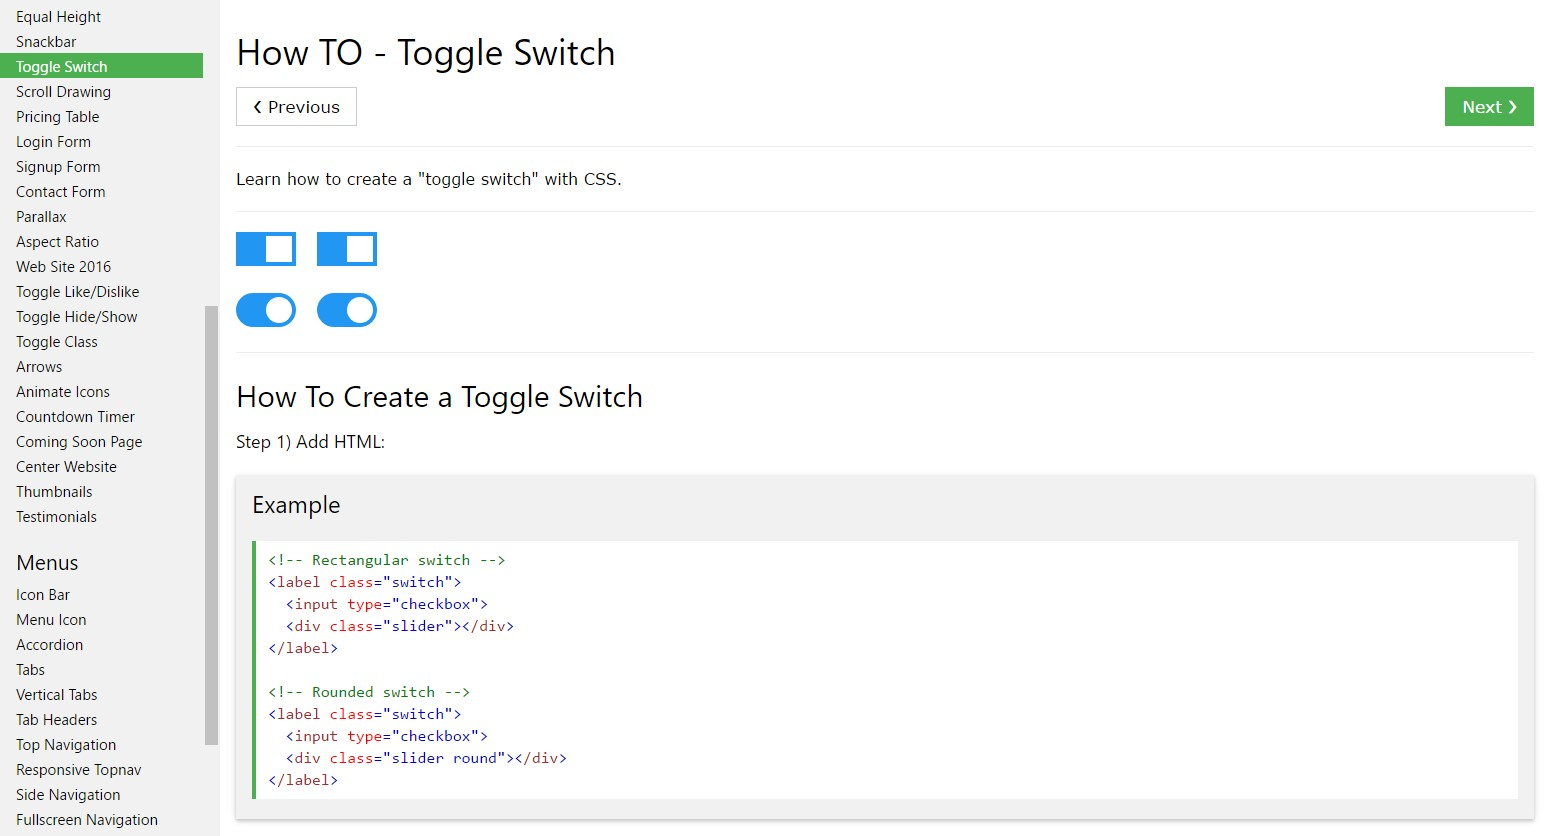 Tips on how to create Toggle Switch